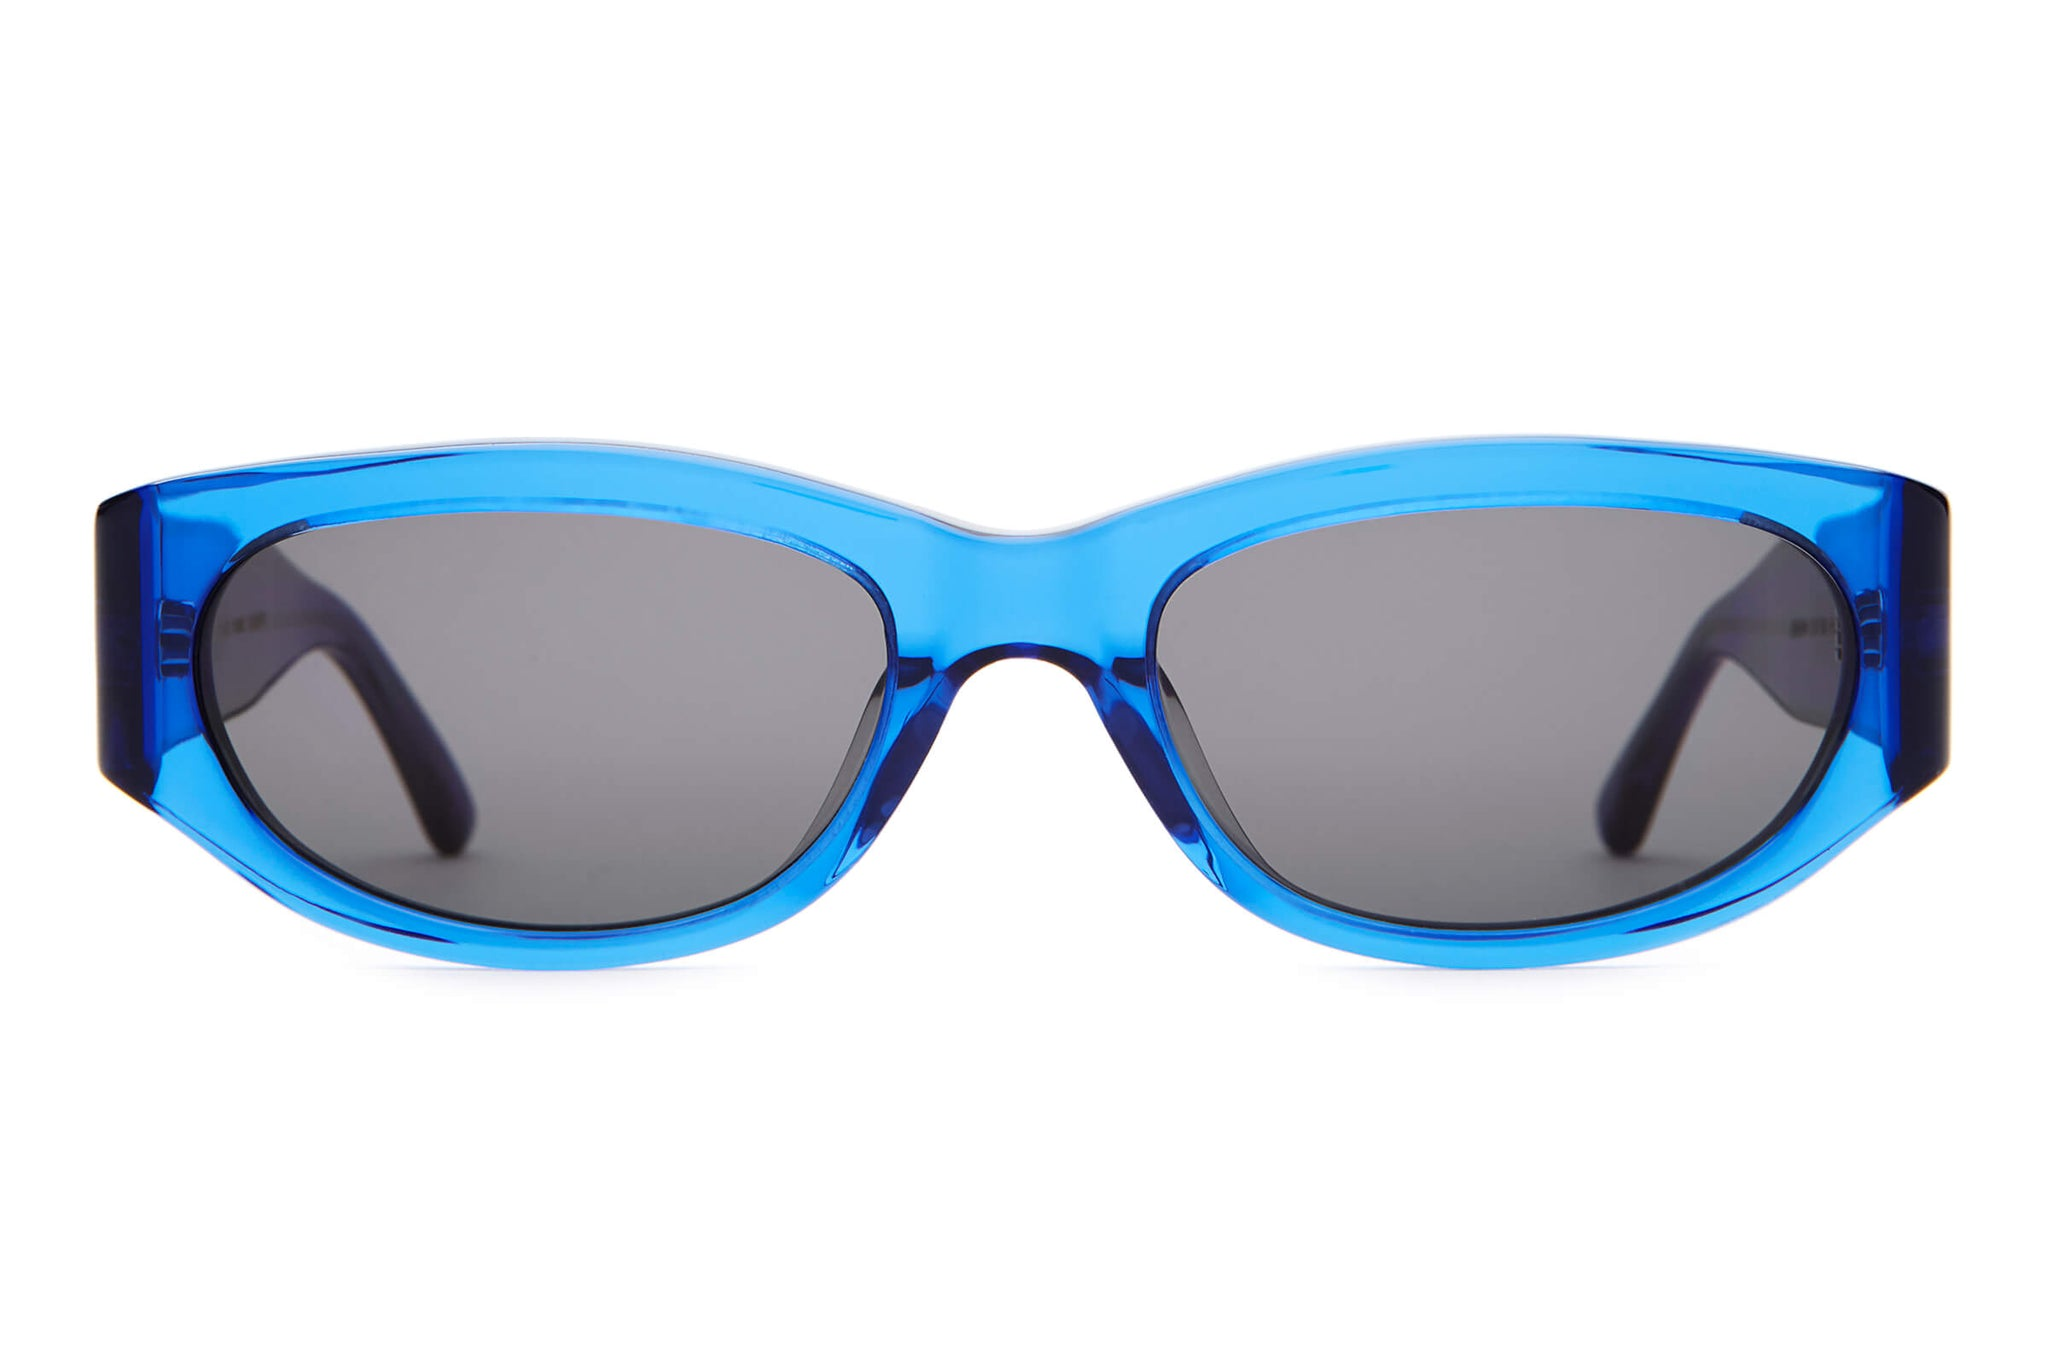 The Funk Punk - Deep Blue - / Grey - Sunglasses